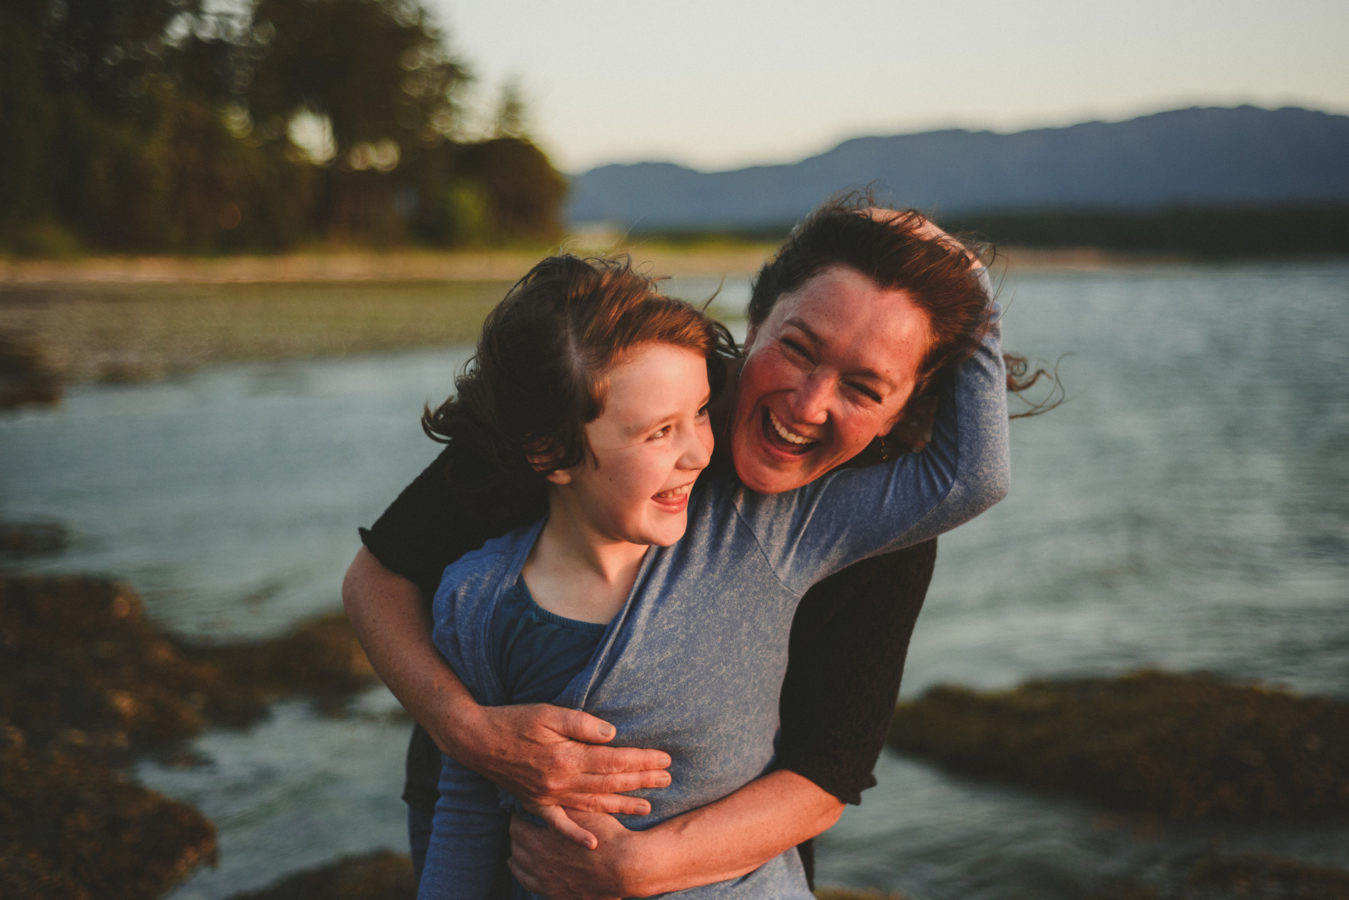 mom and daughter snuggling and laughing in the sunset light by the ocean